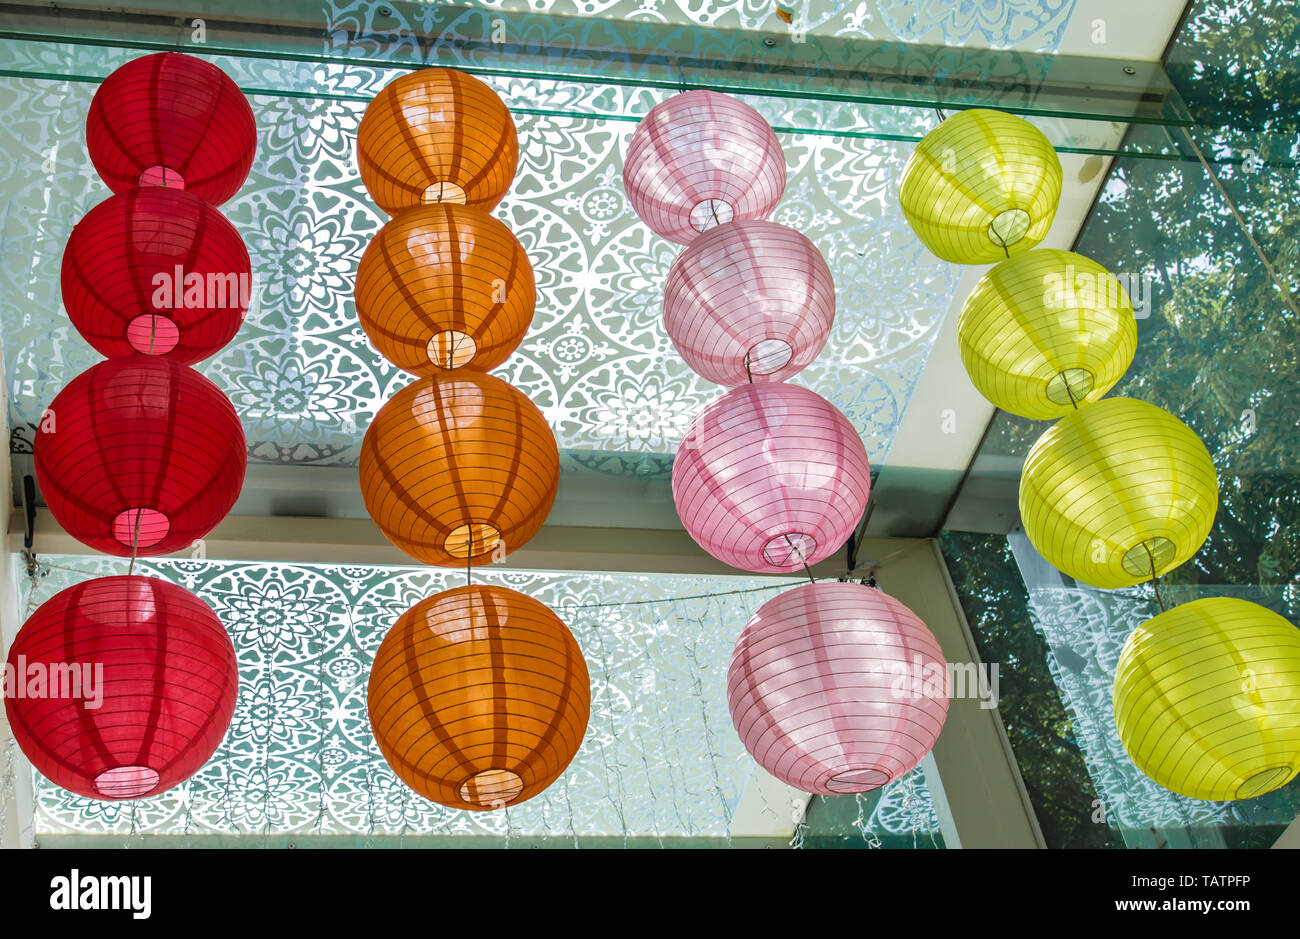 colorful japan style lantern hang on the glass Ceiling - Stock Image